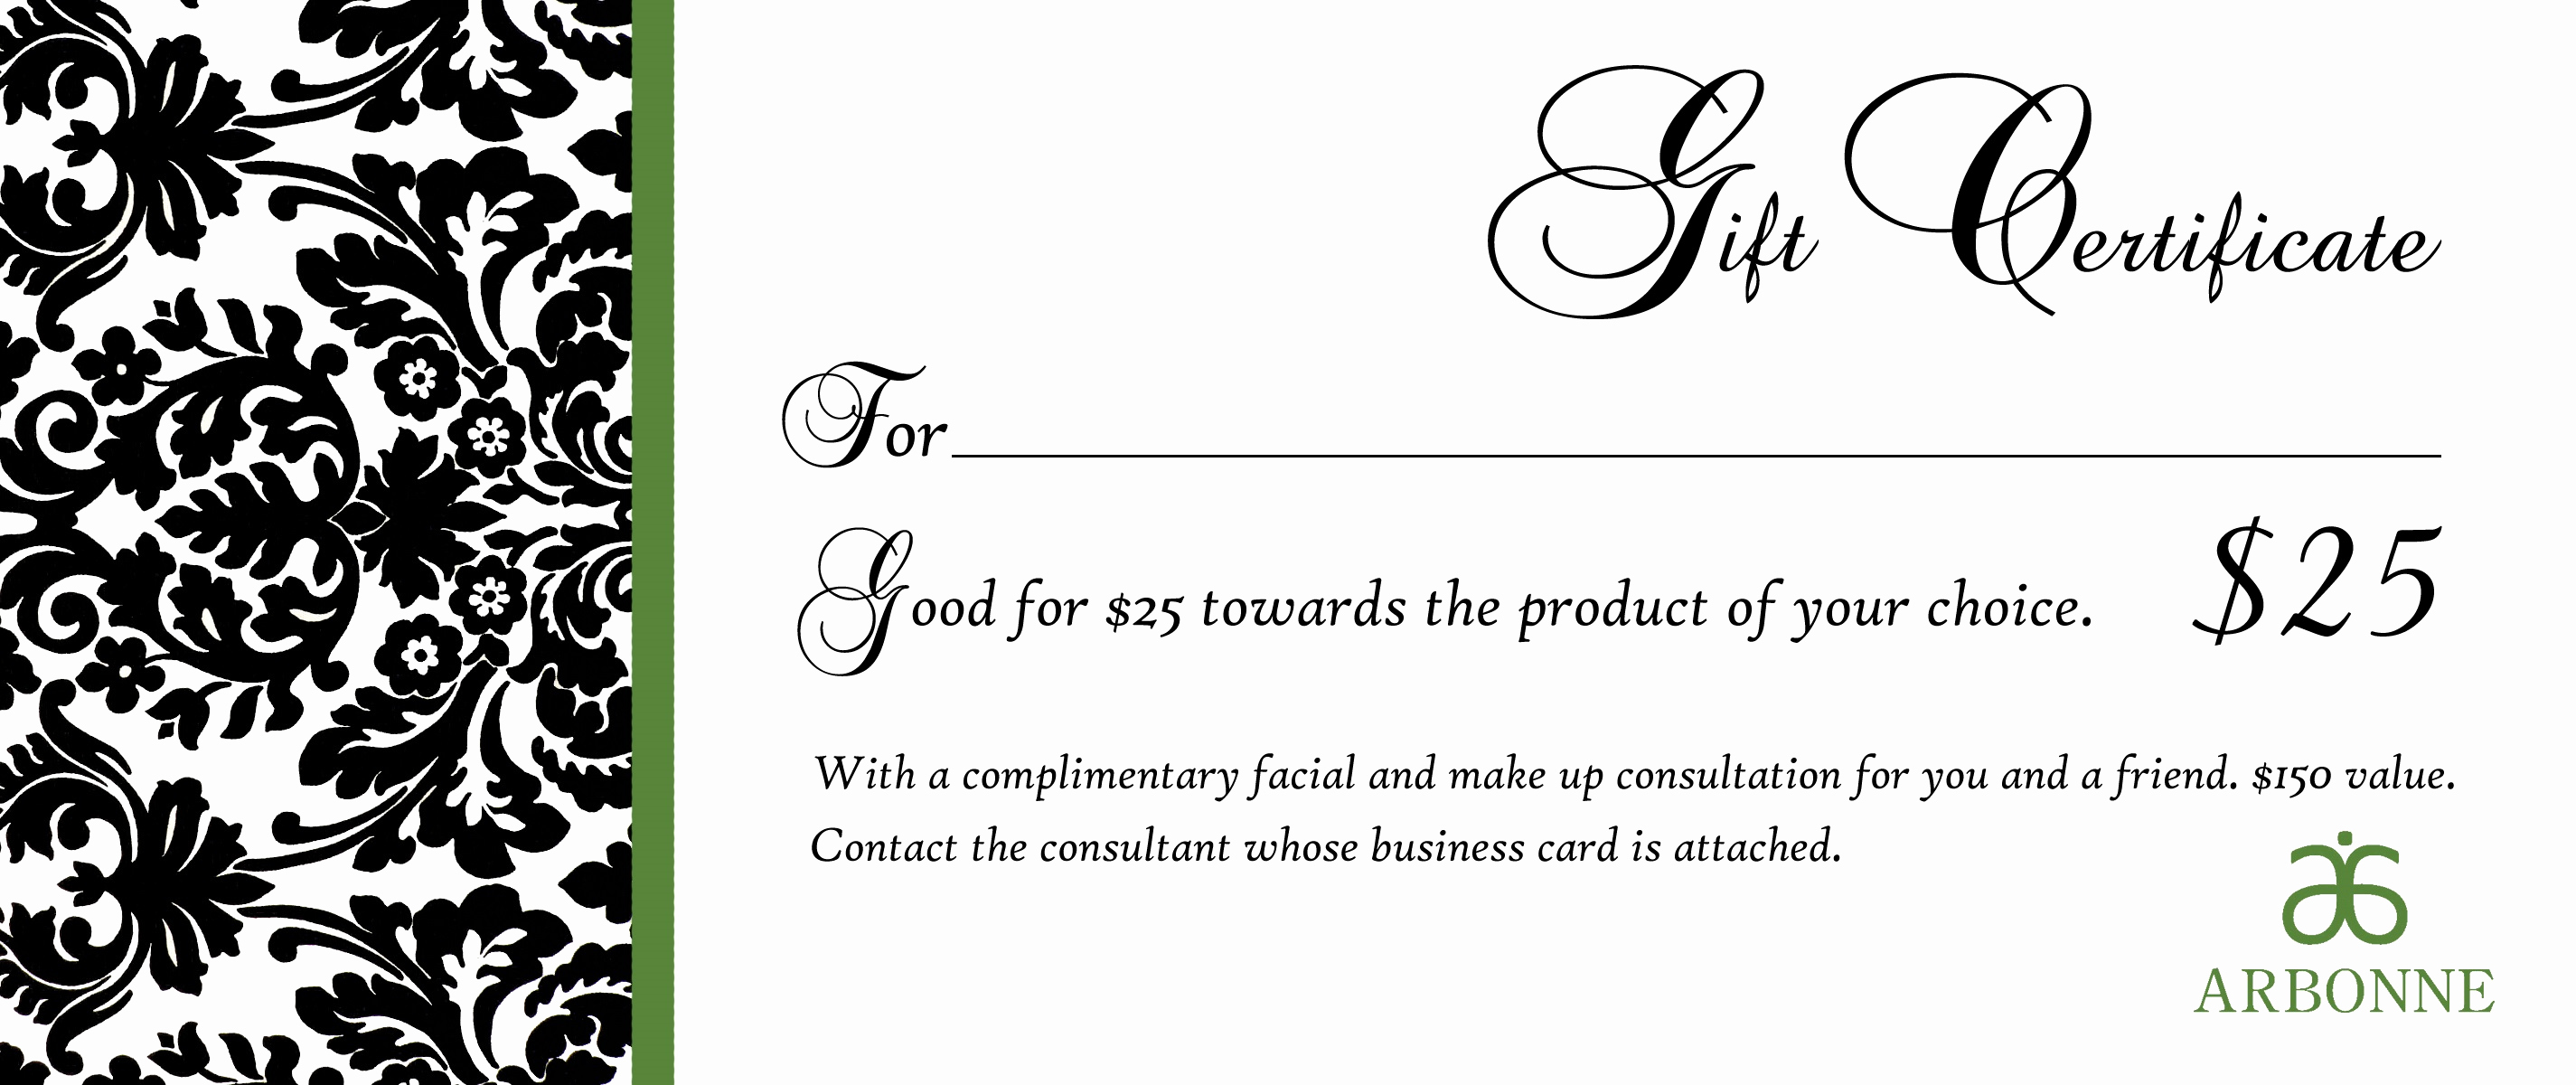 Template for Gift Certificate Awesome Gift Certificate Templates to Print